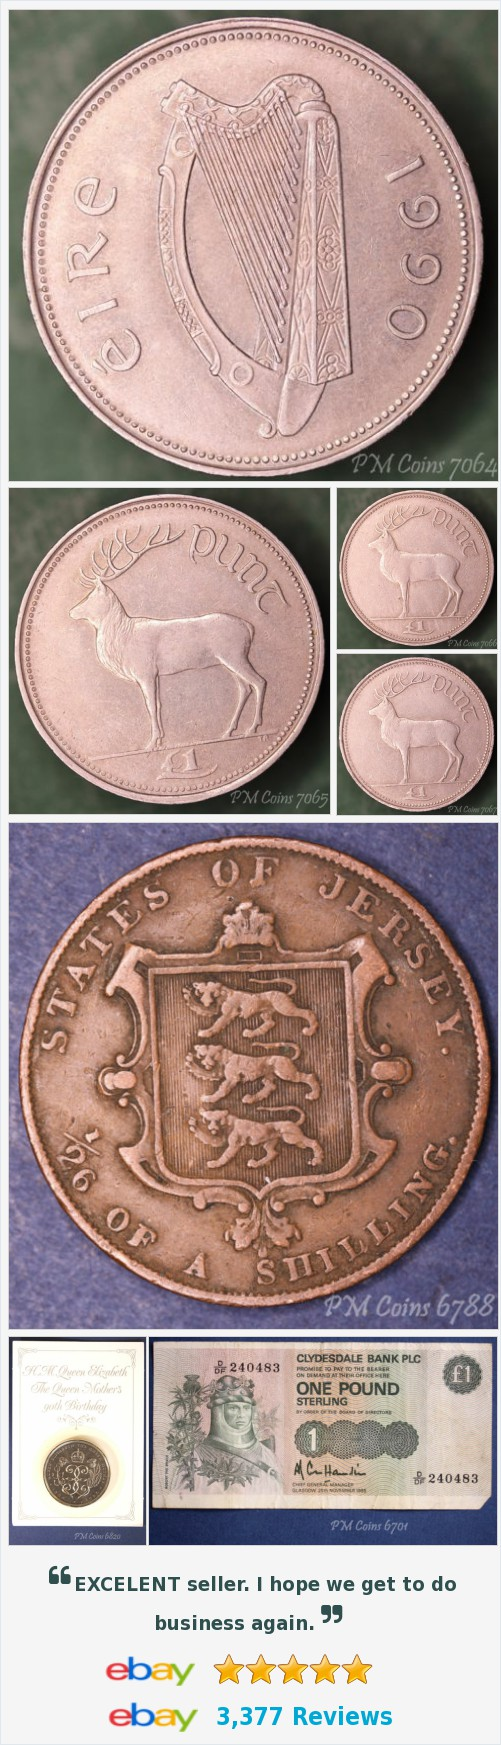 Ireland - Coins and Banknotes, UK Coins - Half Crowns items in PM Coin Shop store on eBay! http://stores.ebay.co.uk/pmcoinshop